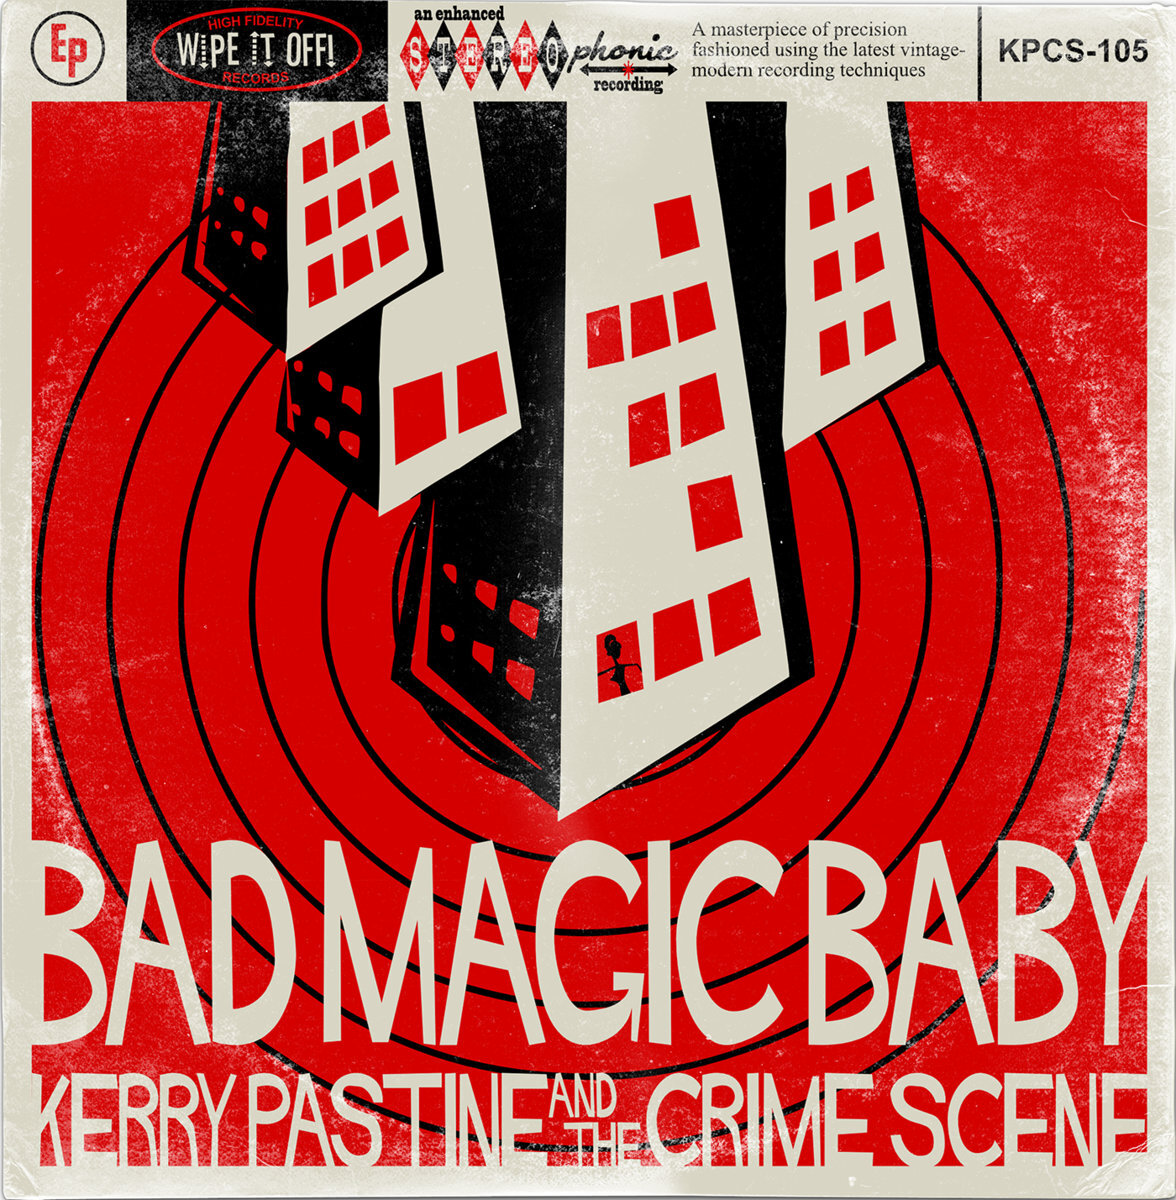 Bad Magic Baby (6/2017) - The energetic follow-up EP to Let's Do This Thing. After listening, you will want to join the ranks of Crime Scene fans, aka